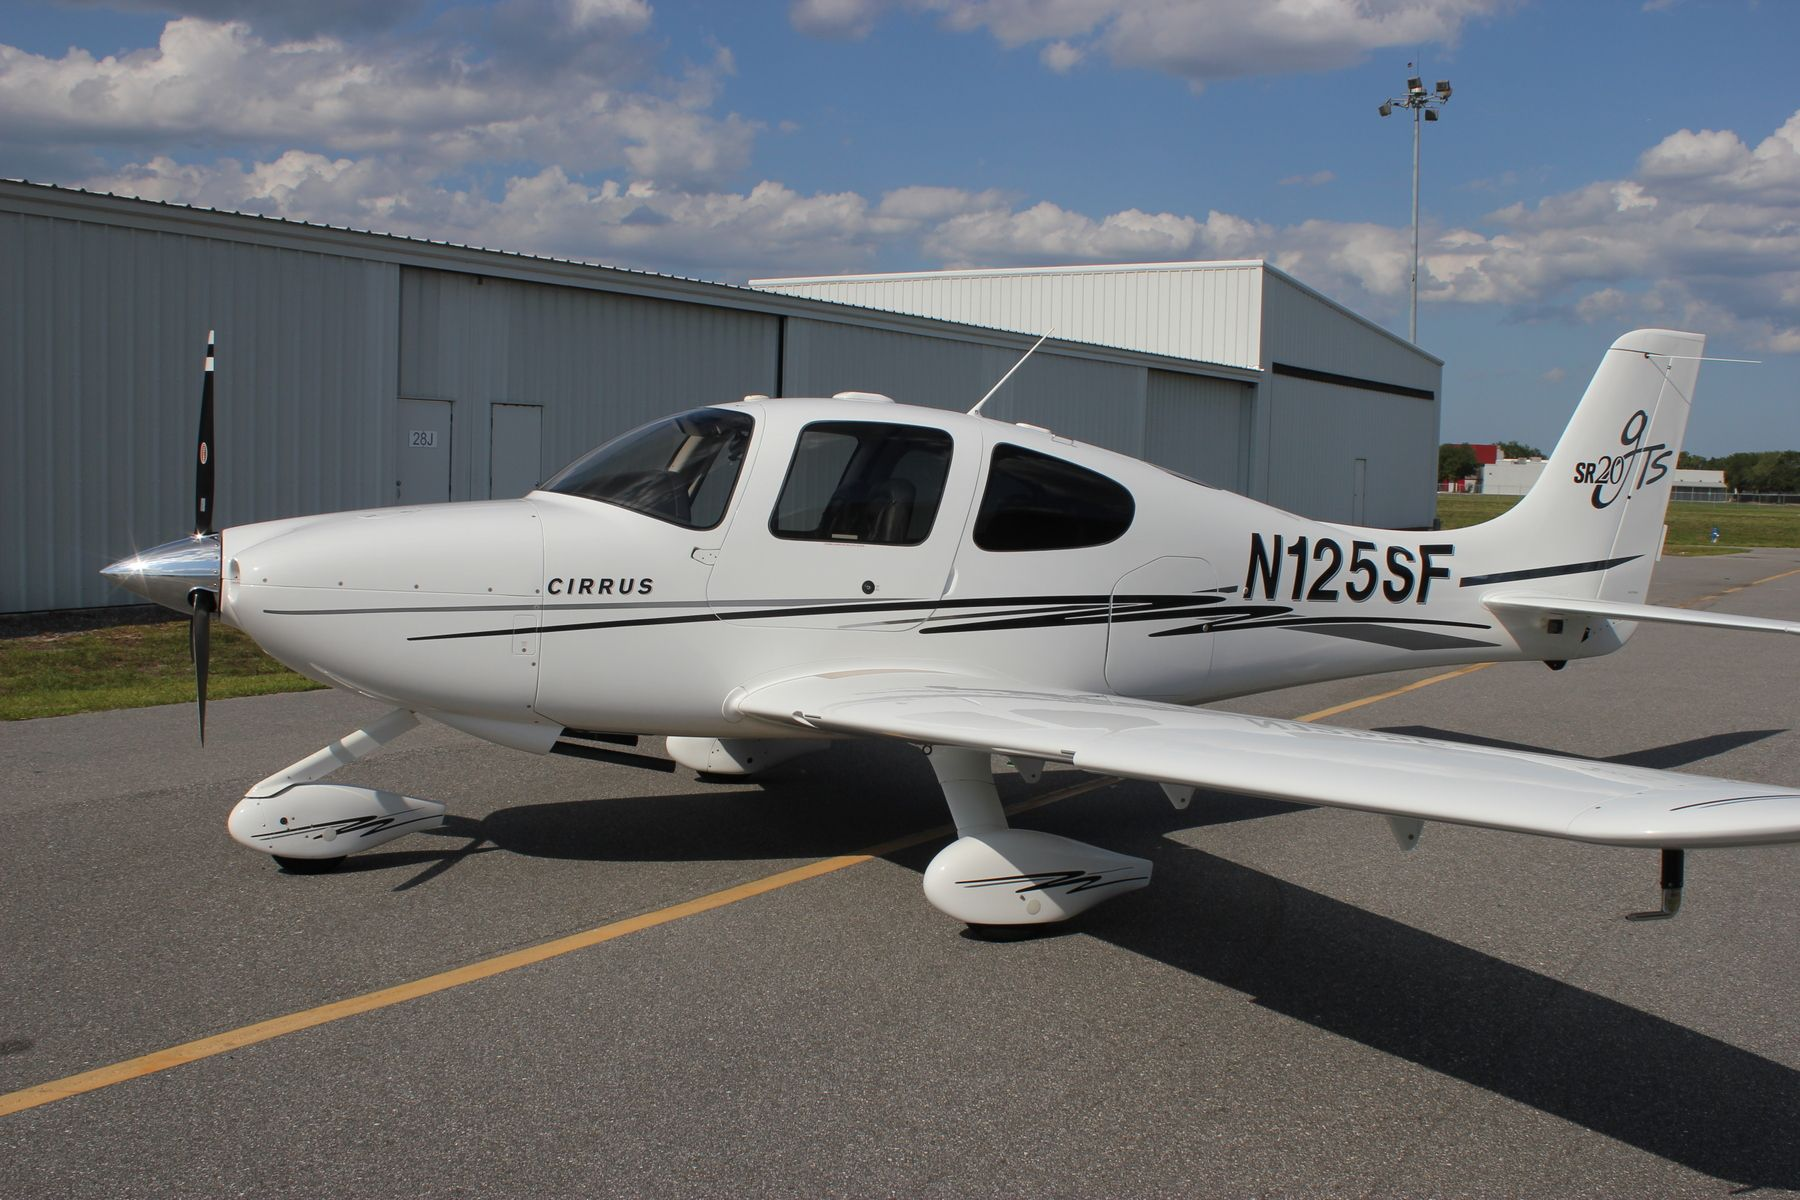 Pin by Jon Sonsteby on Aviation | Cirrus sr20, Engine